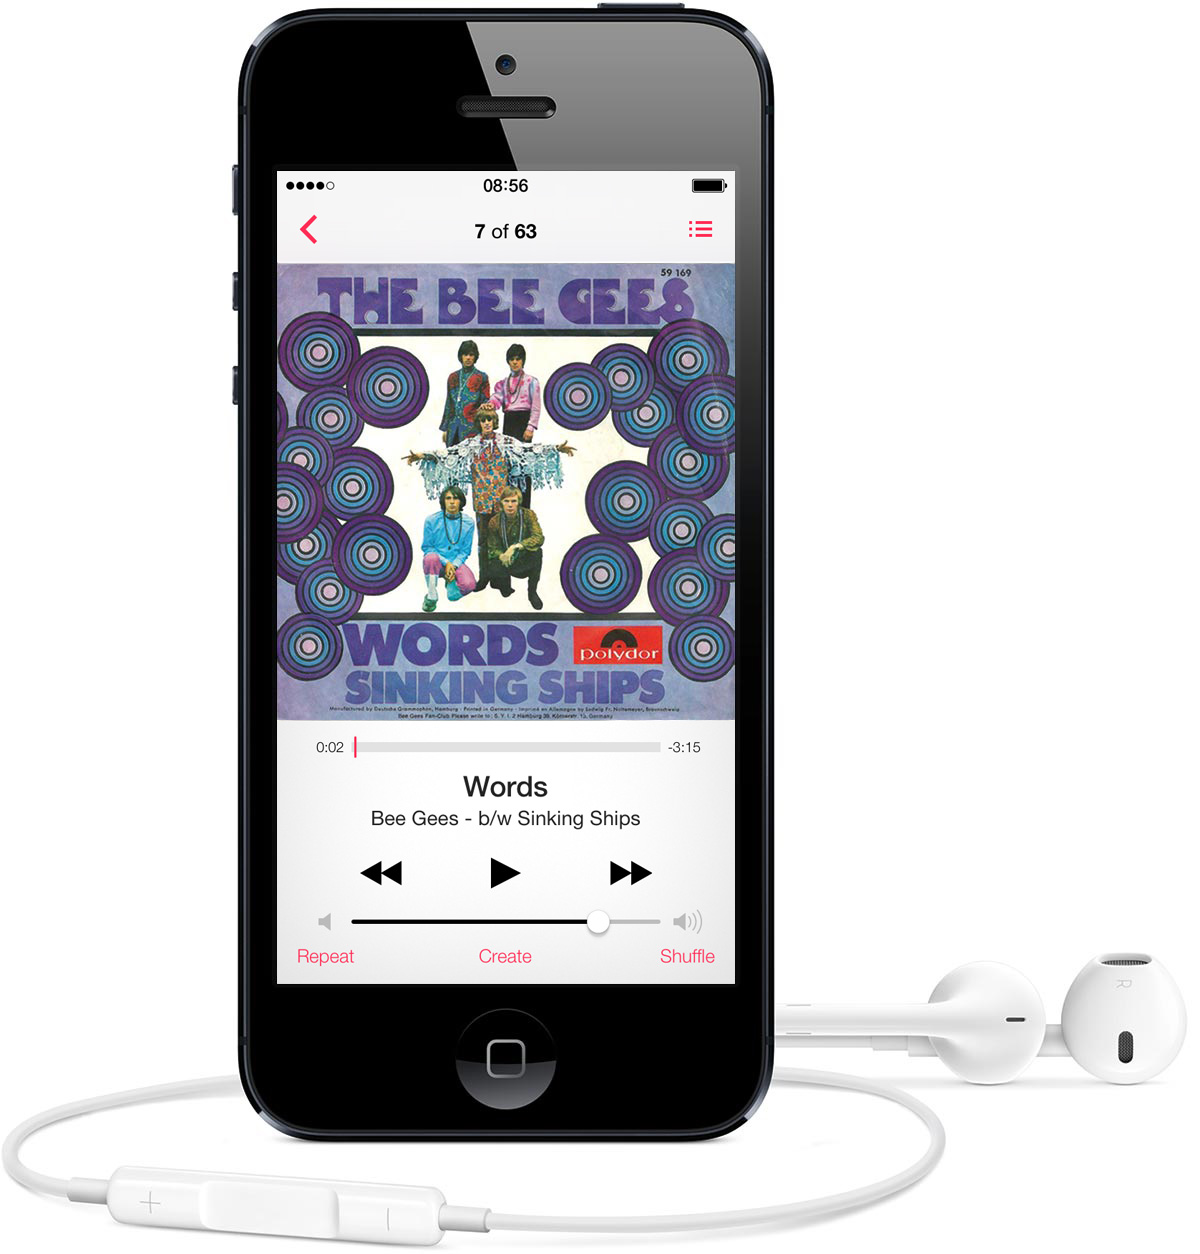 """Screenshot of the Music app in iOS 7 playing """"Words""""from the album """"Sinking Ships"""" by The Bee Gees"""